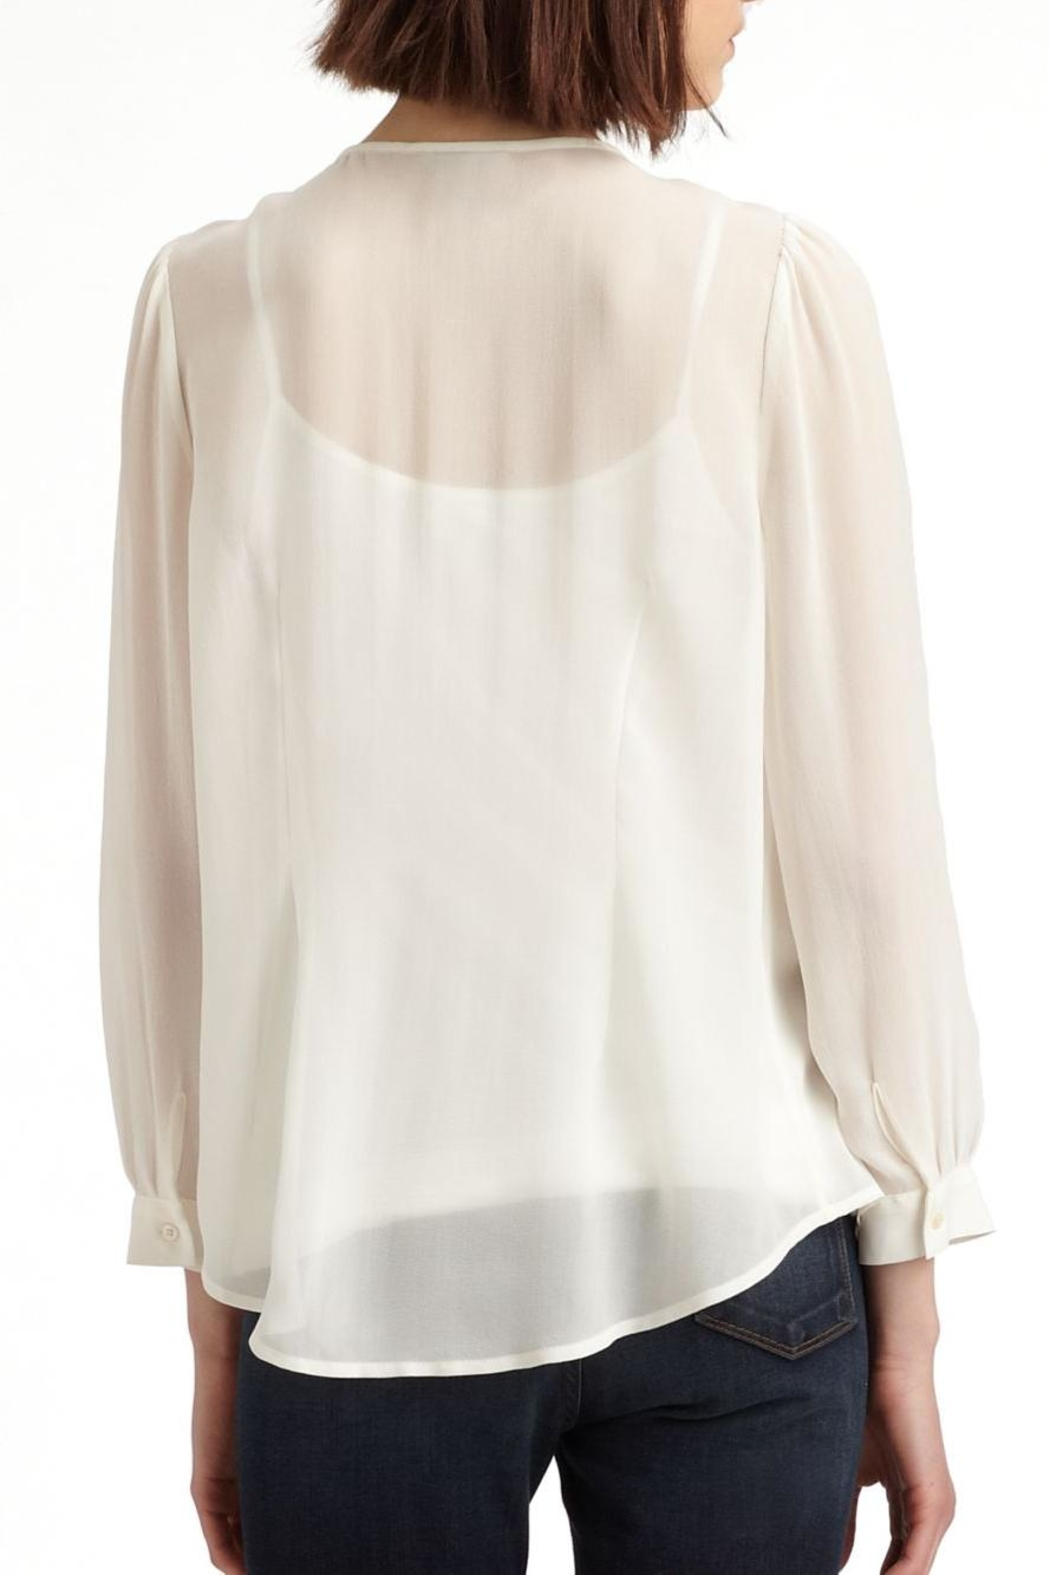 Joie Sinden Ombre Blouse - Front Full Image